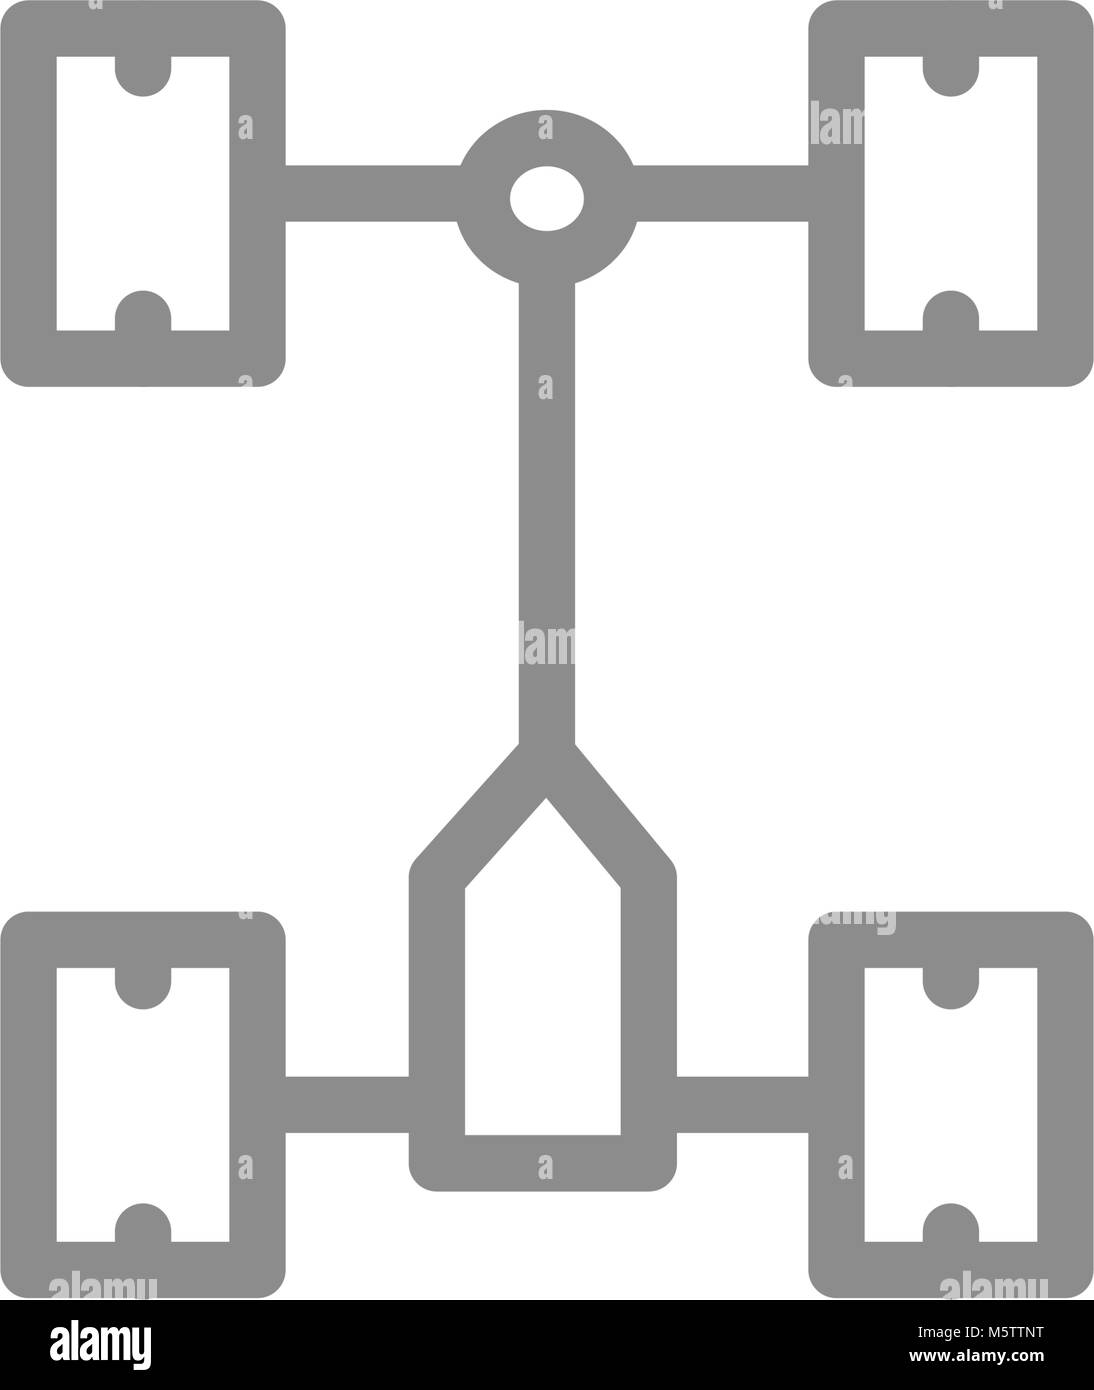 Simple car chassis, undercarriage line icon. Symbol and sign vector illustration design. Isolated on white background - Stock Image